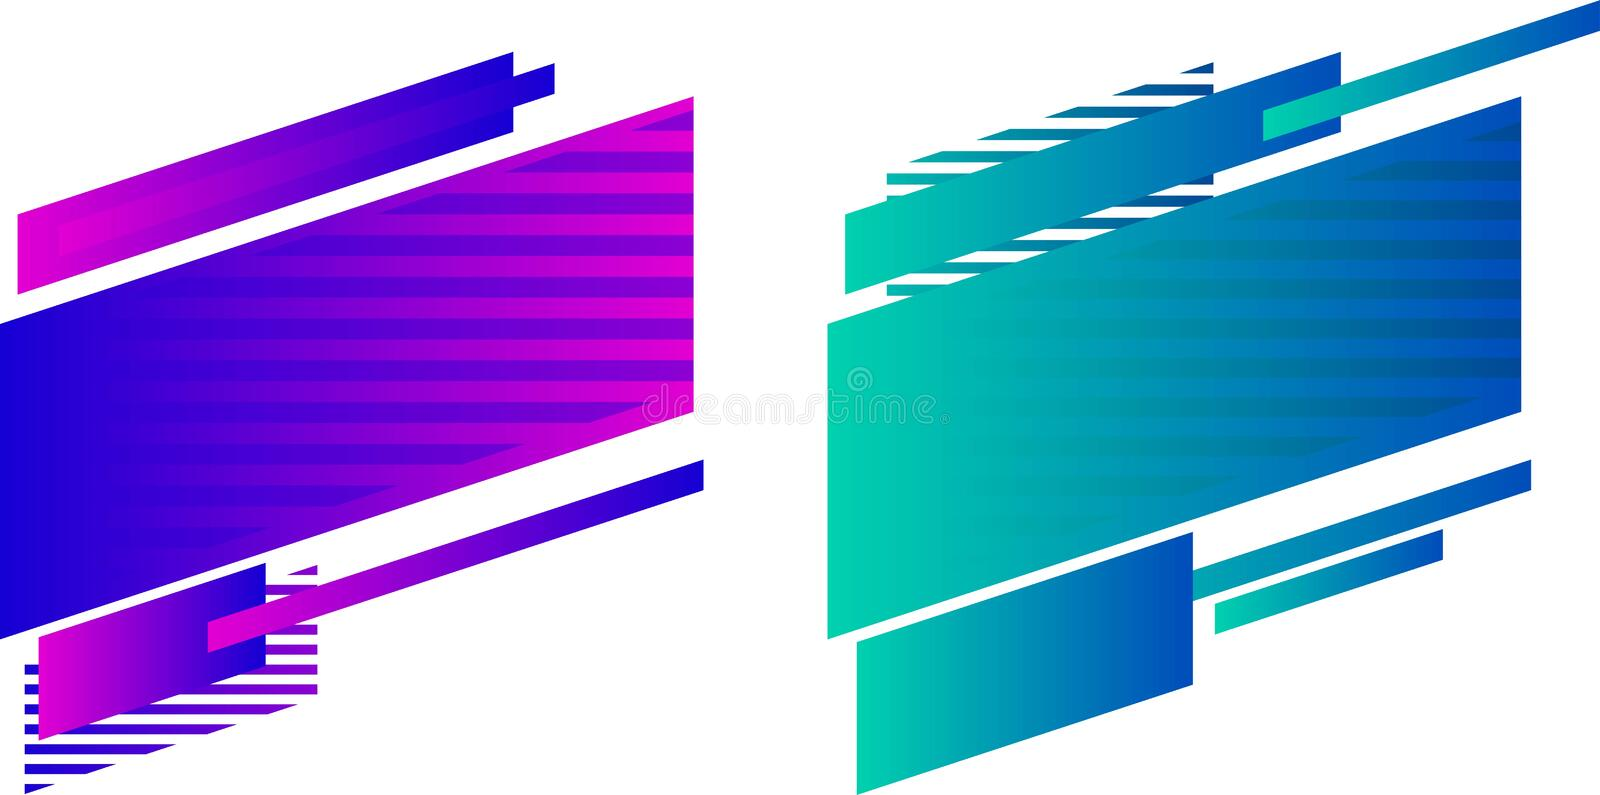 Super Sale, this weekend special offer banner, up to 70% off. Vector illustration. stock illustration